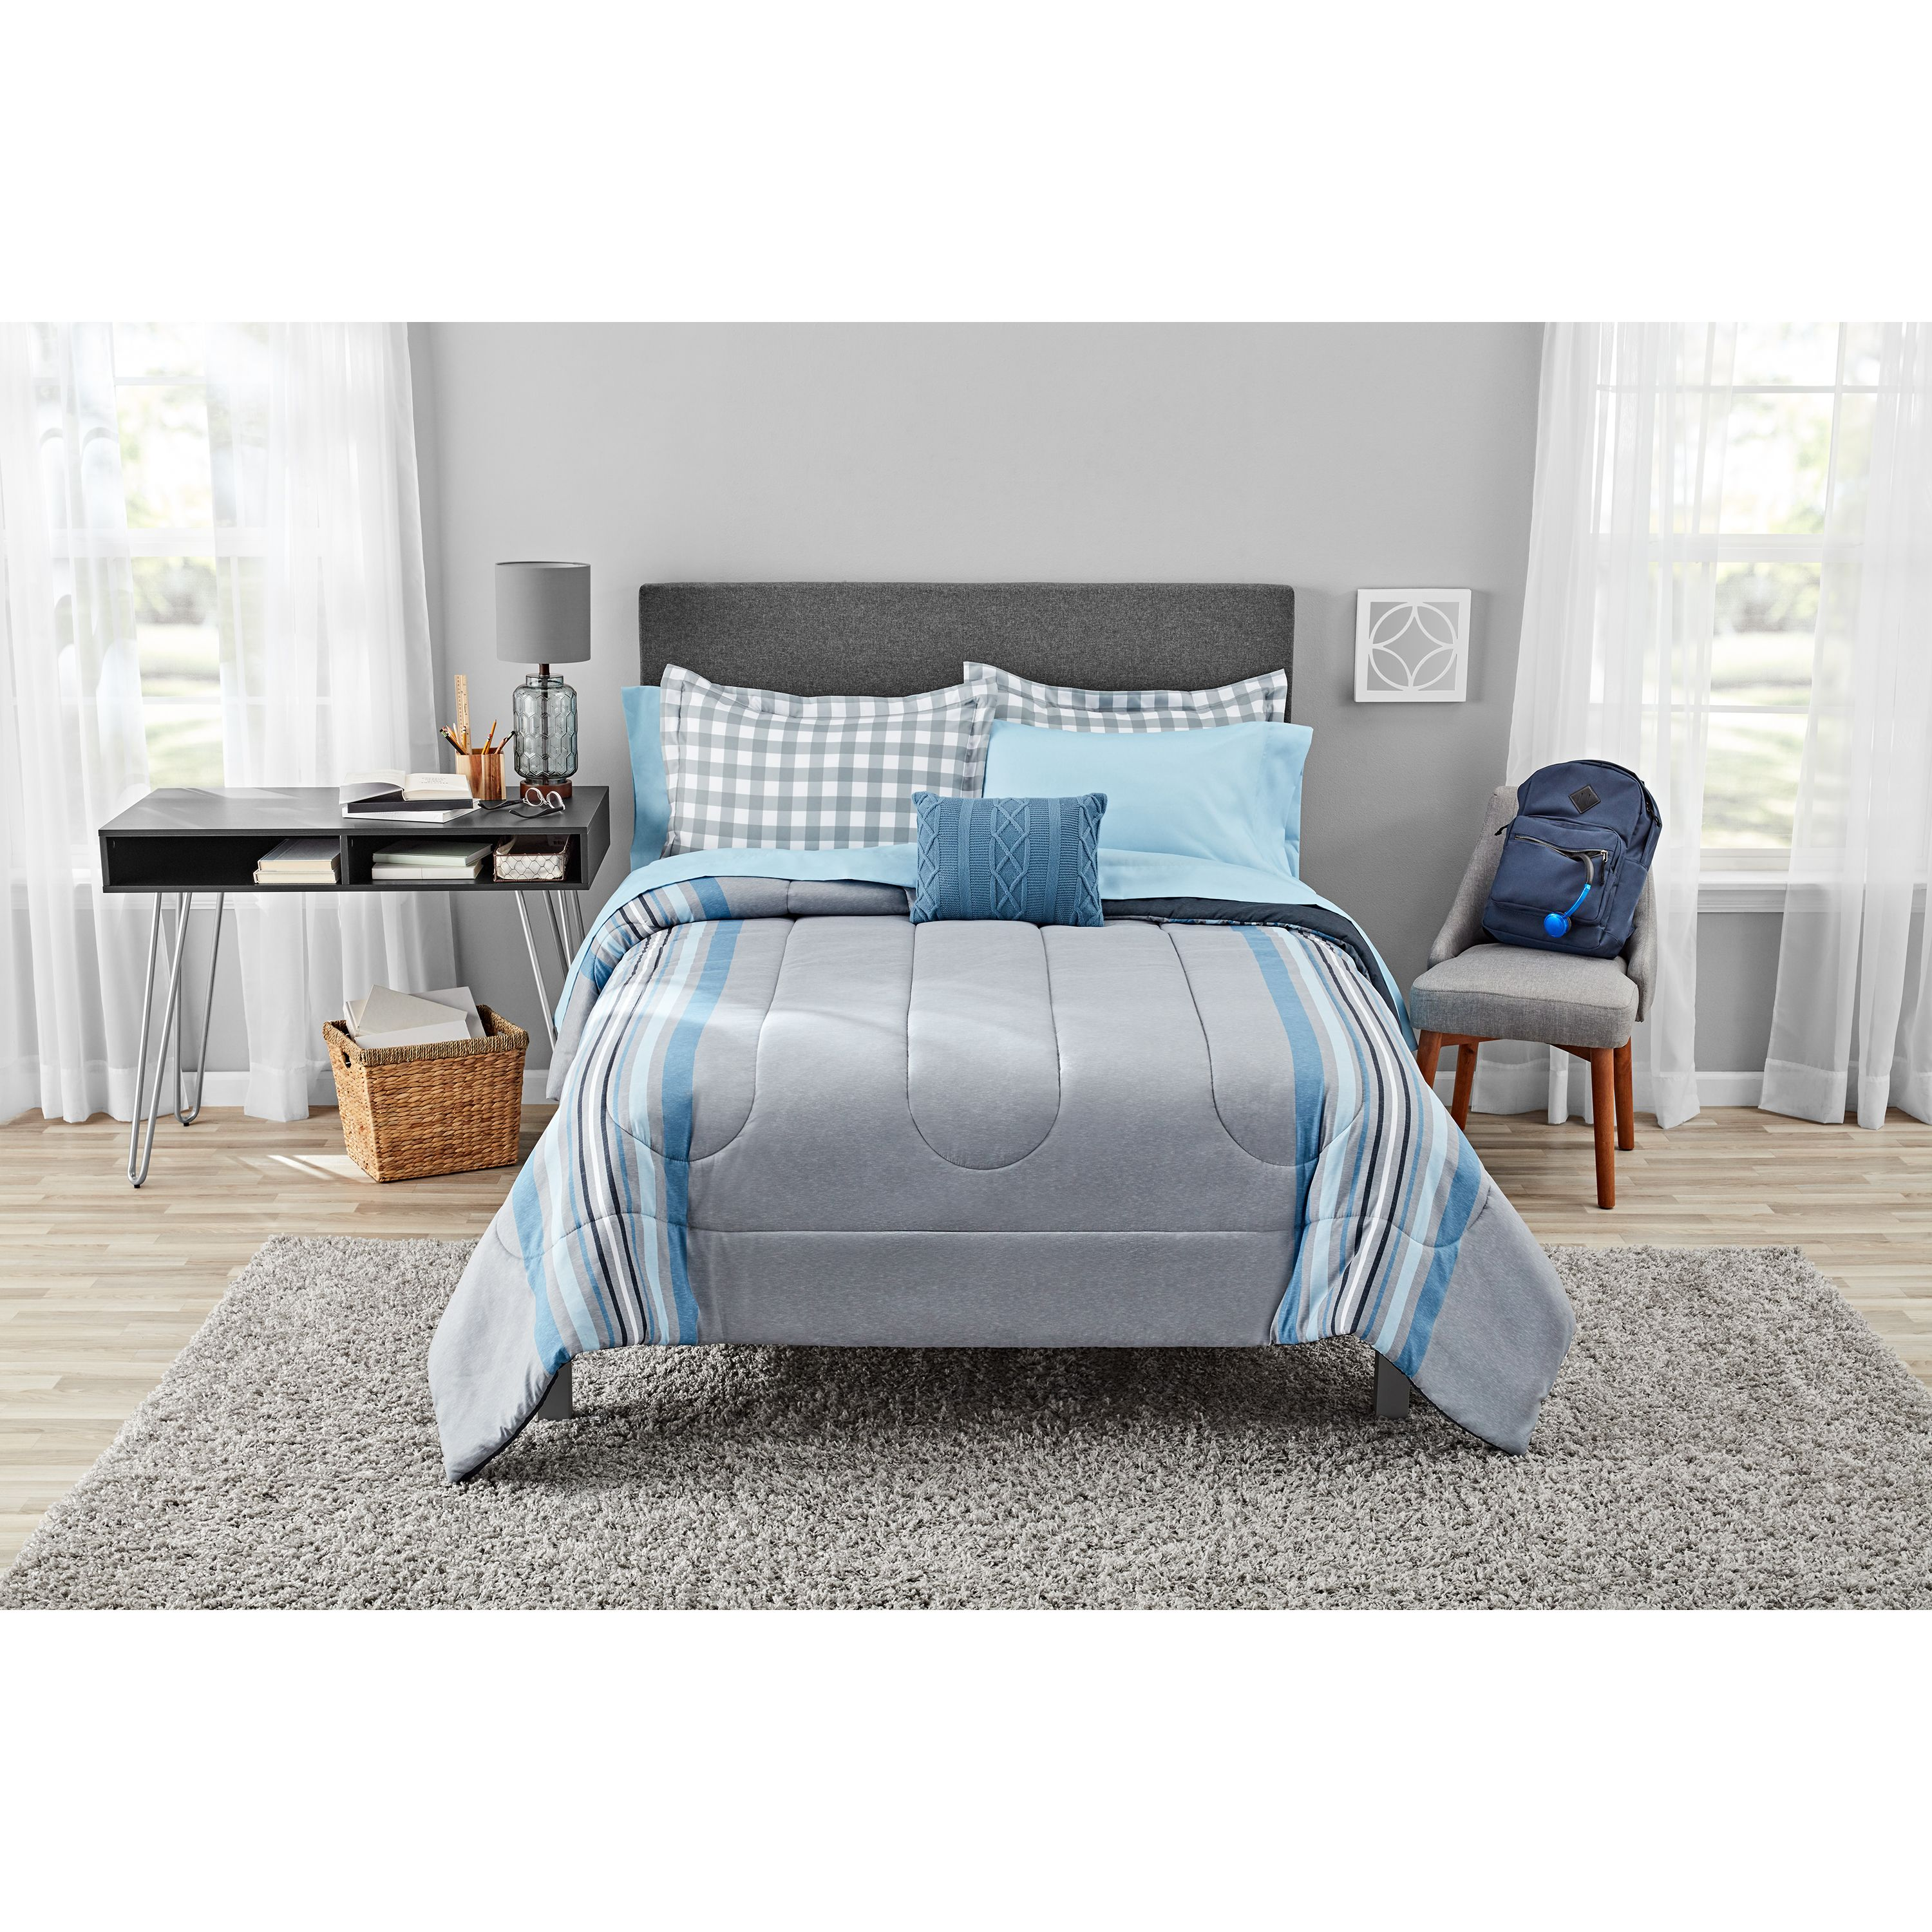 Mainstays Farmhouse Gray Stripe Bed in a Bag Bedding Set